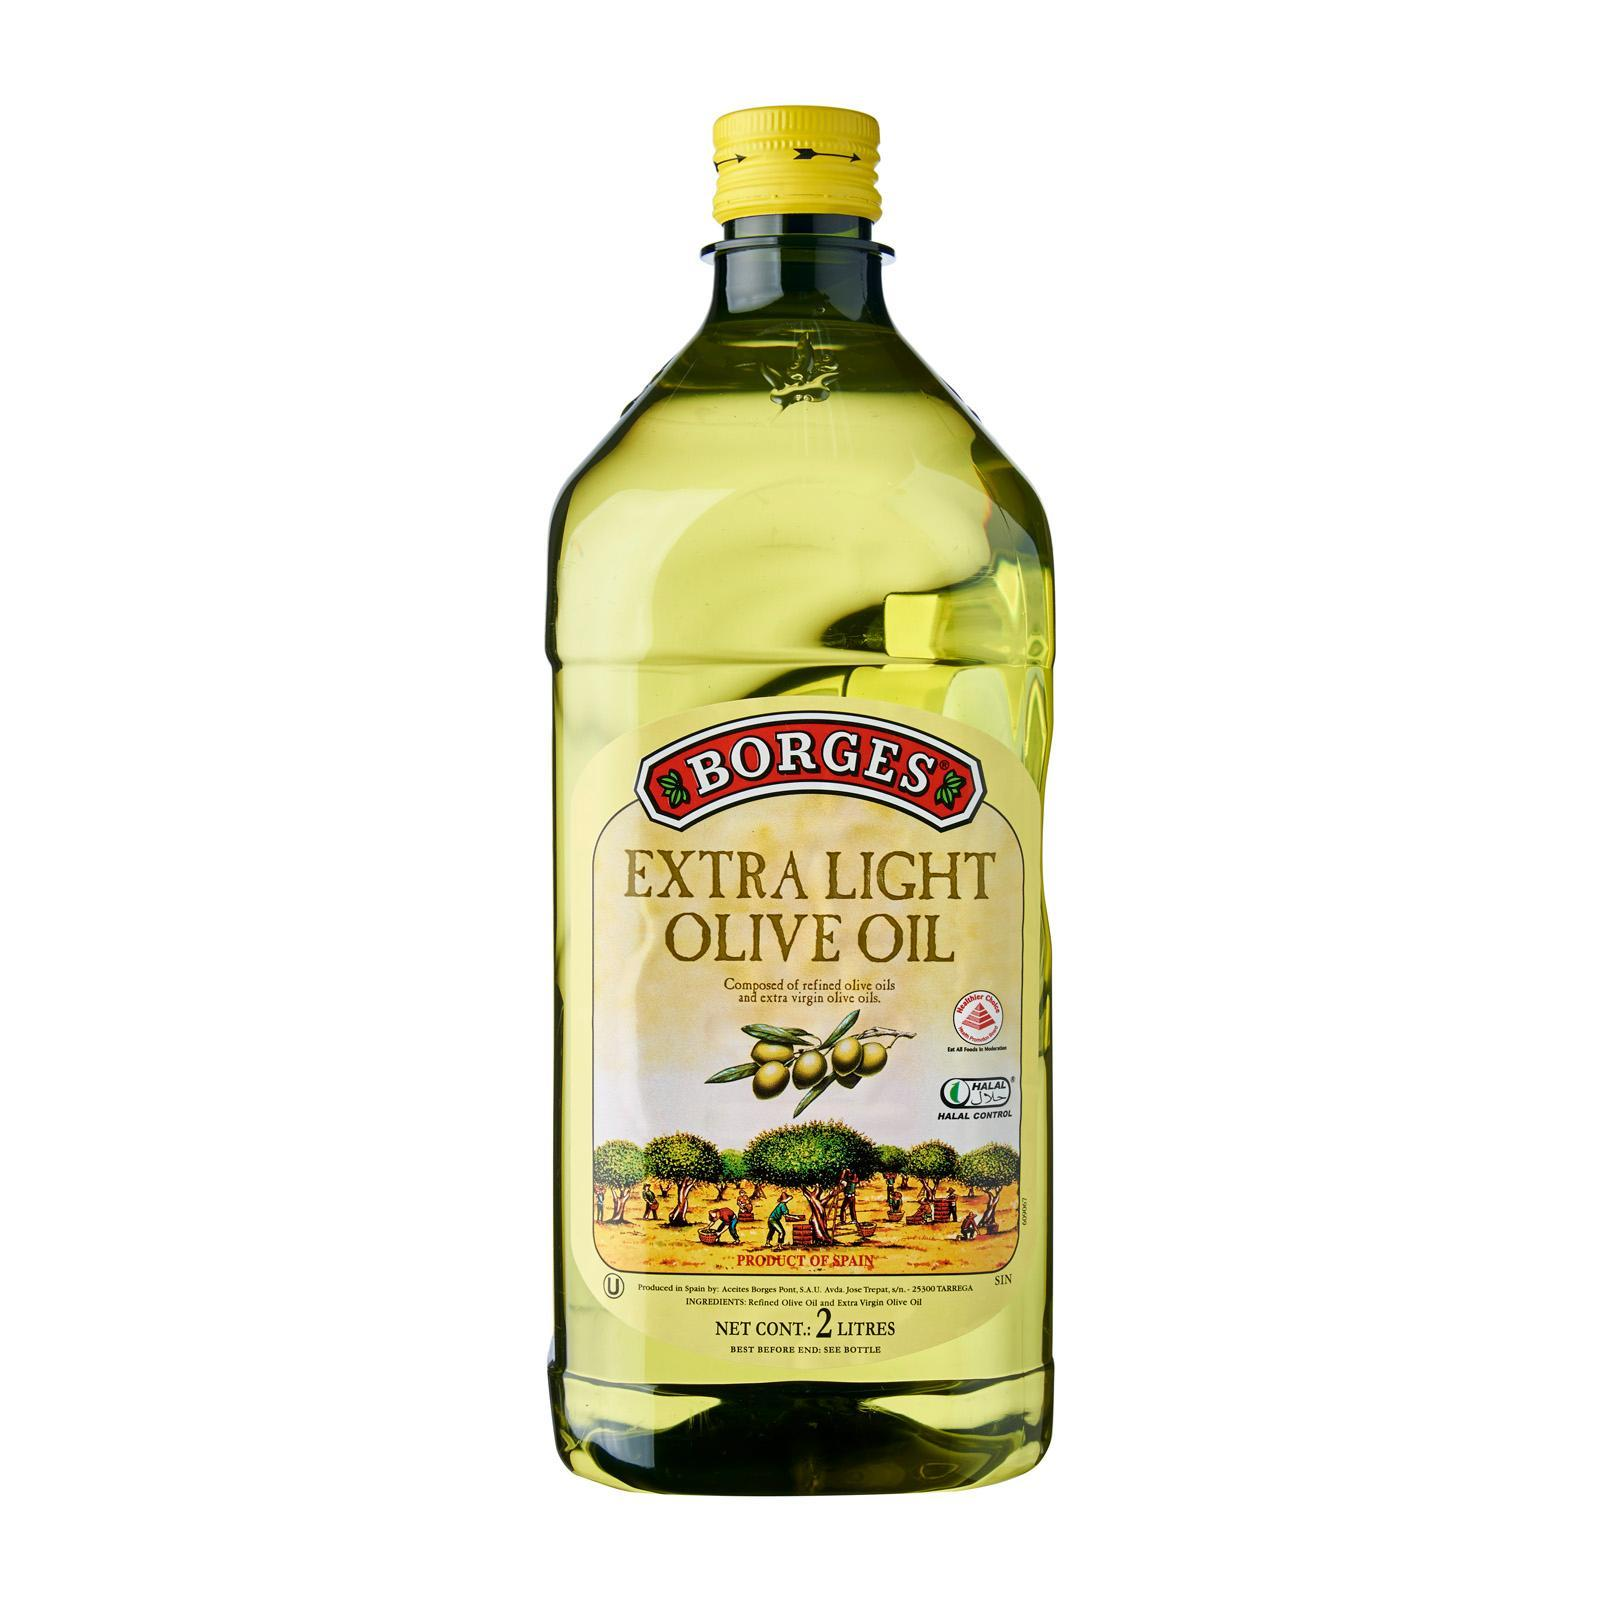 Borges Extra Light Olive Oil 2L